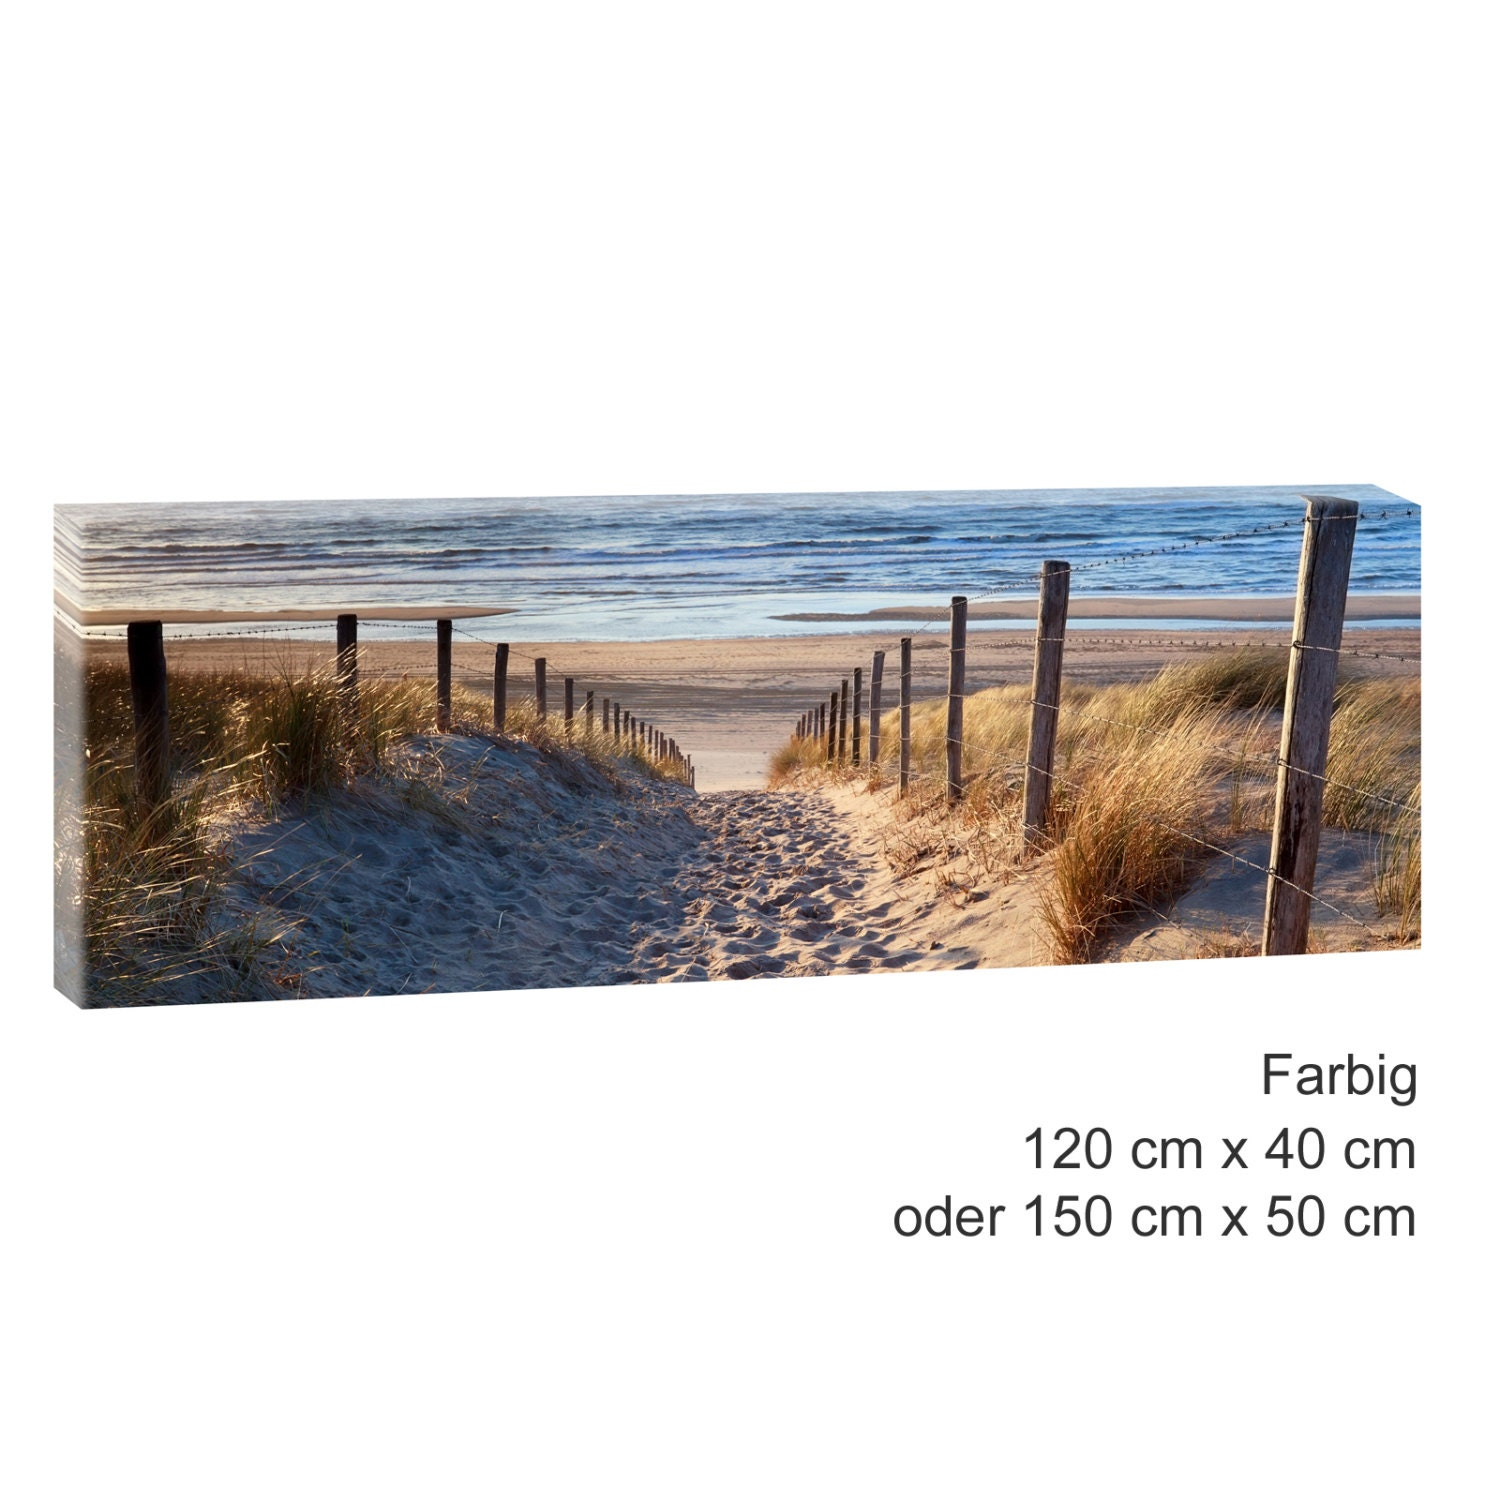 weg zum strand bild strand meer keilrahmen leinwand poster xxl. Black Bedroom Furniture Sets. Home Design Ideas